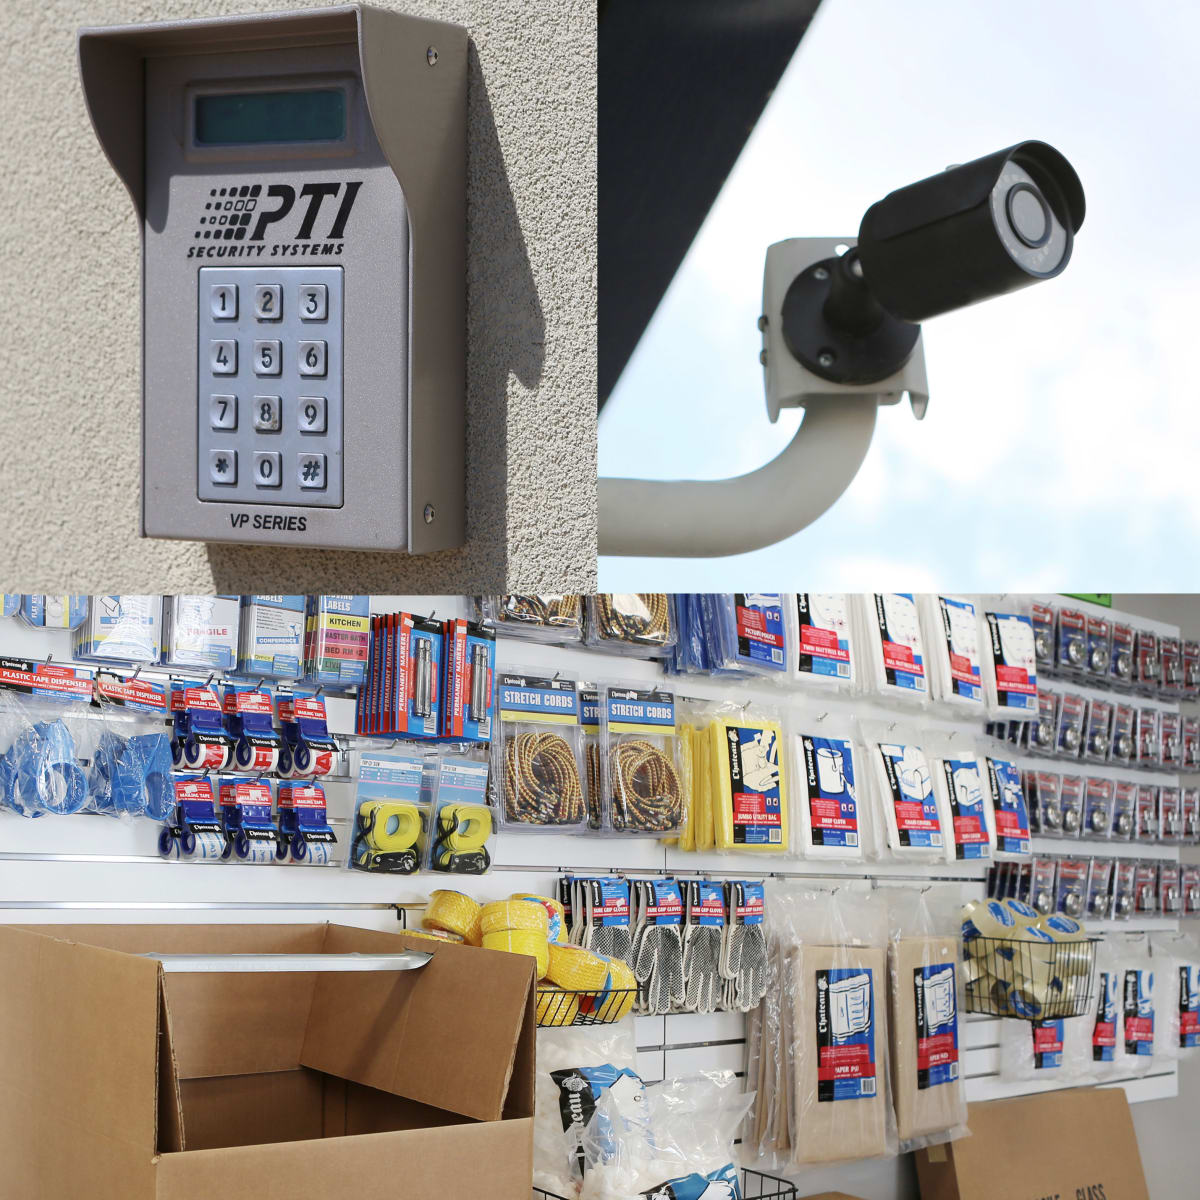 We provide 24 hour security monitoring and sell various moving and packing supplies at Midgard Self Storage in Florence, Alabama